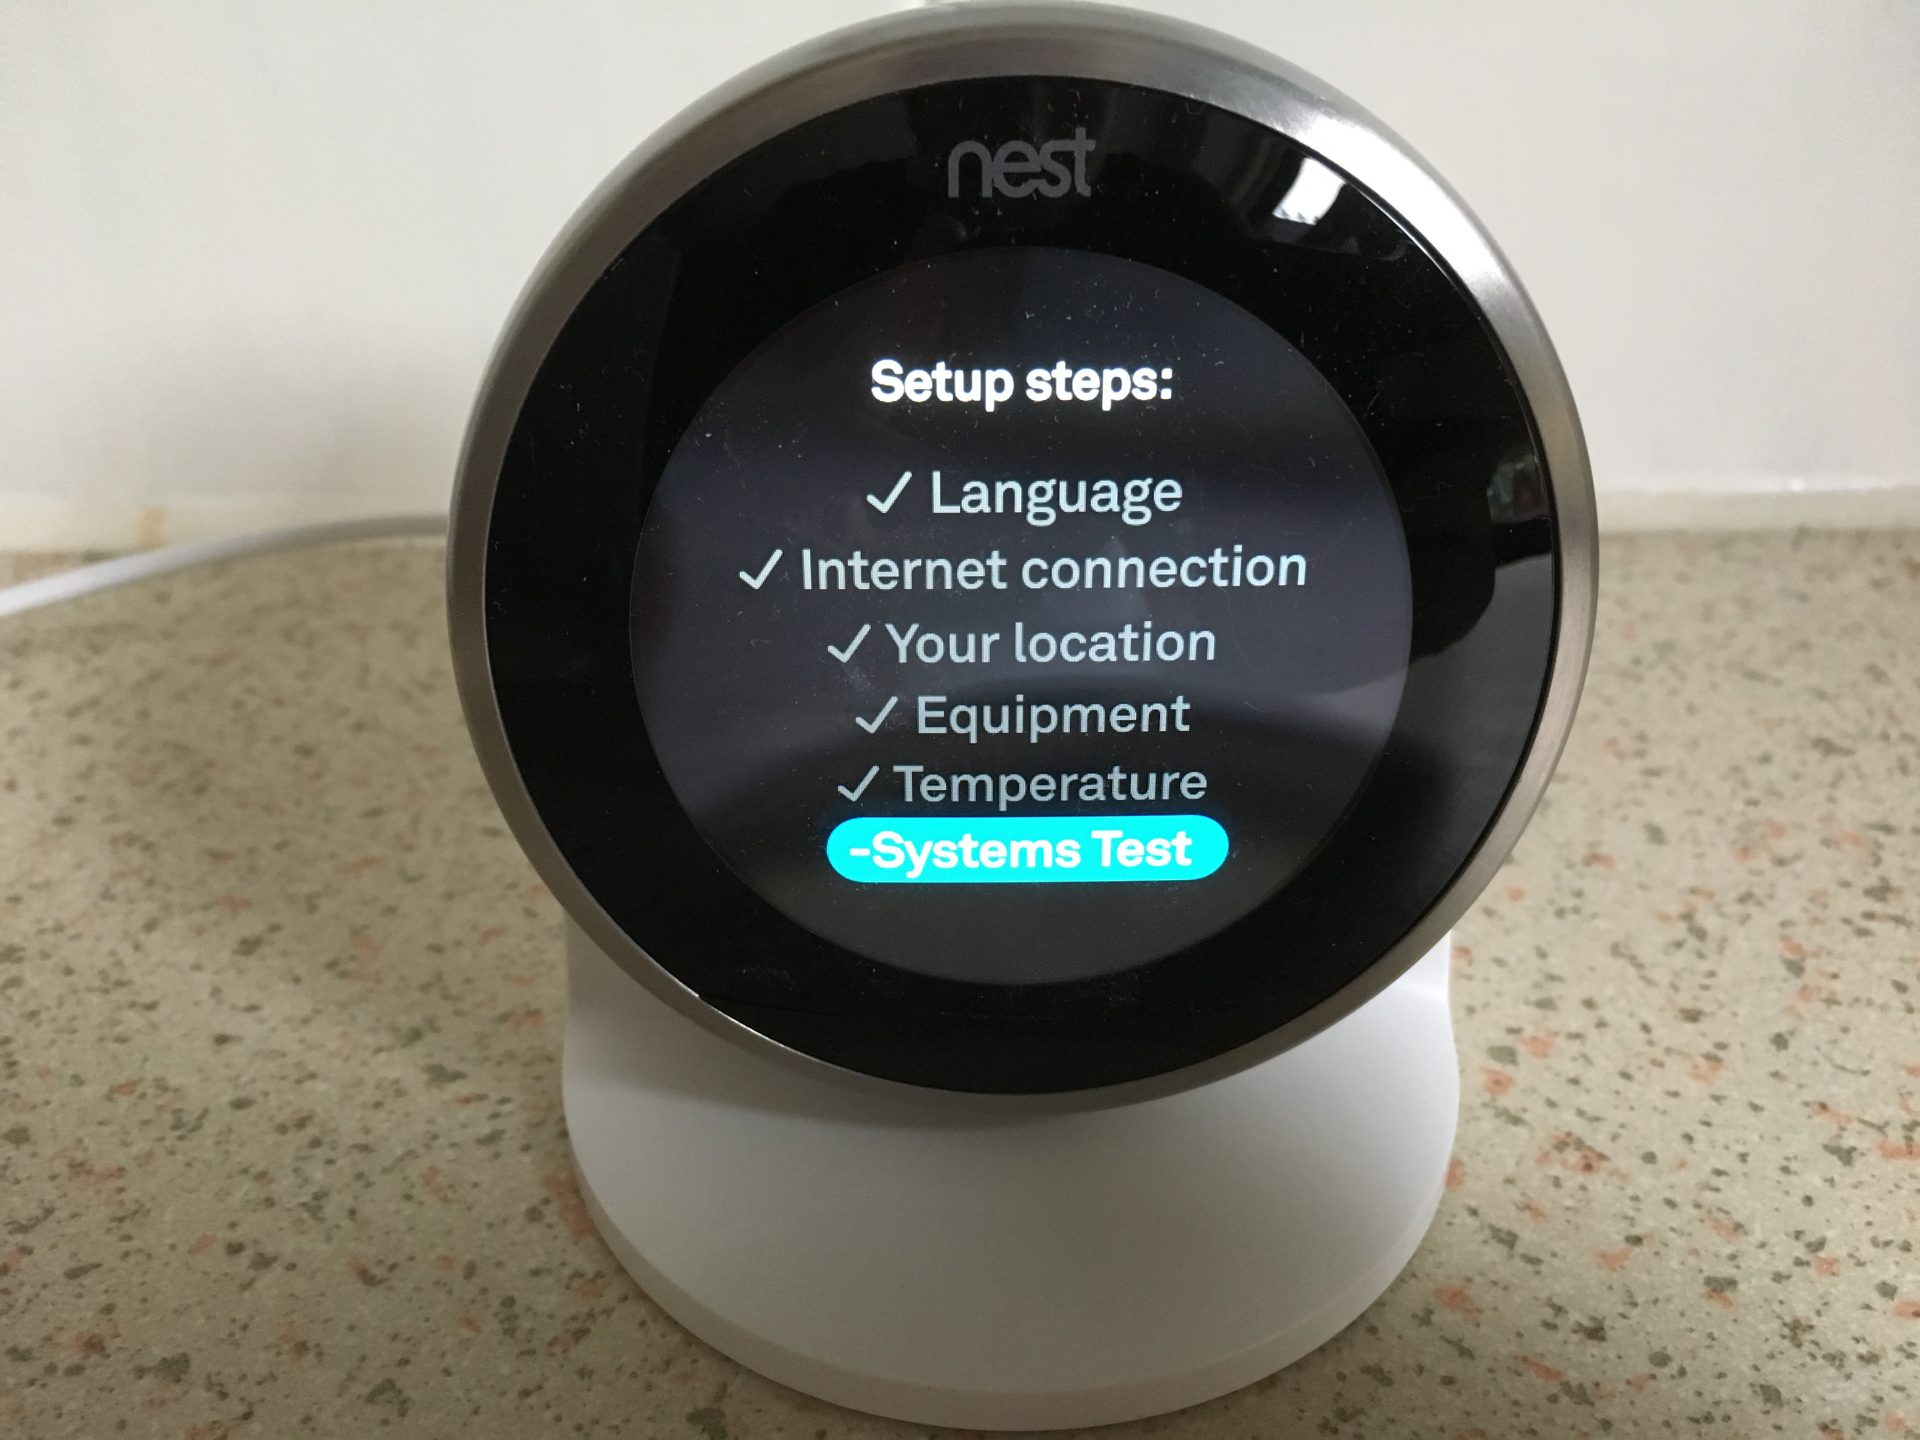 Nest thermostat setup